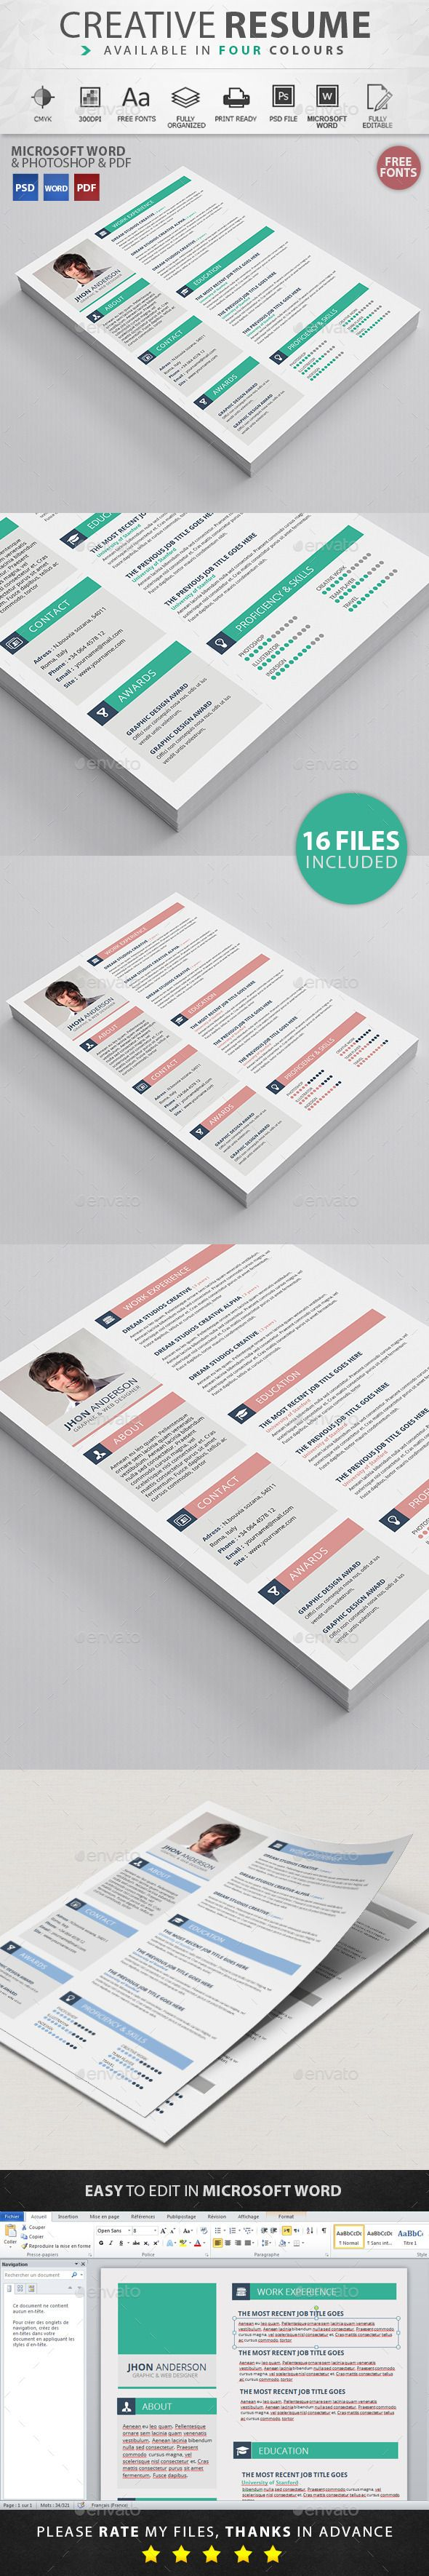 272 Best Resume Design Images On Pinterest Resume Templates Cv